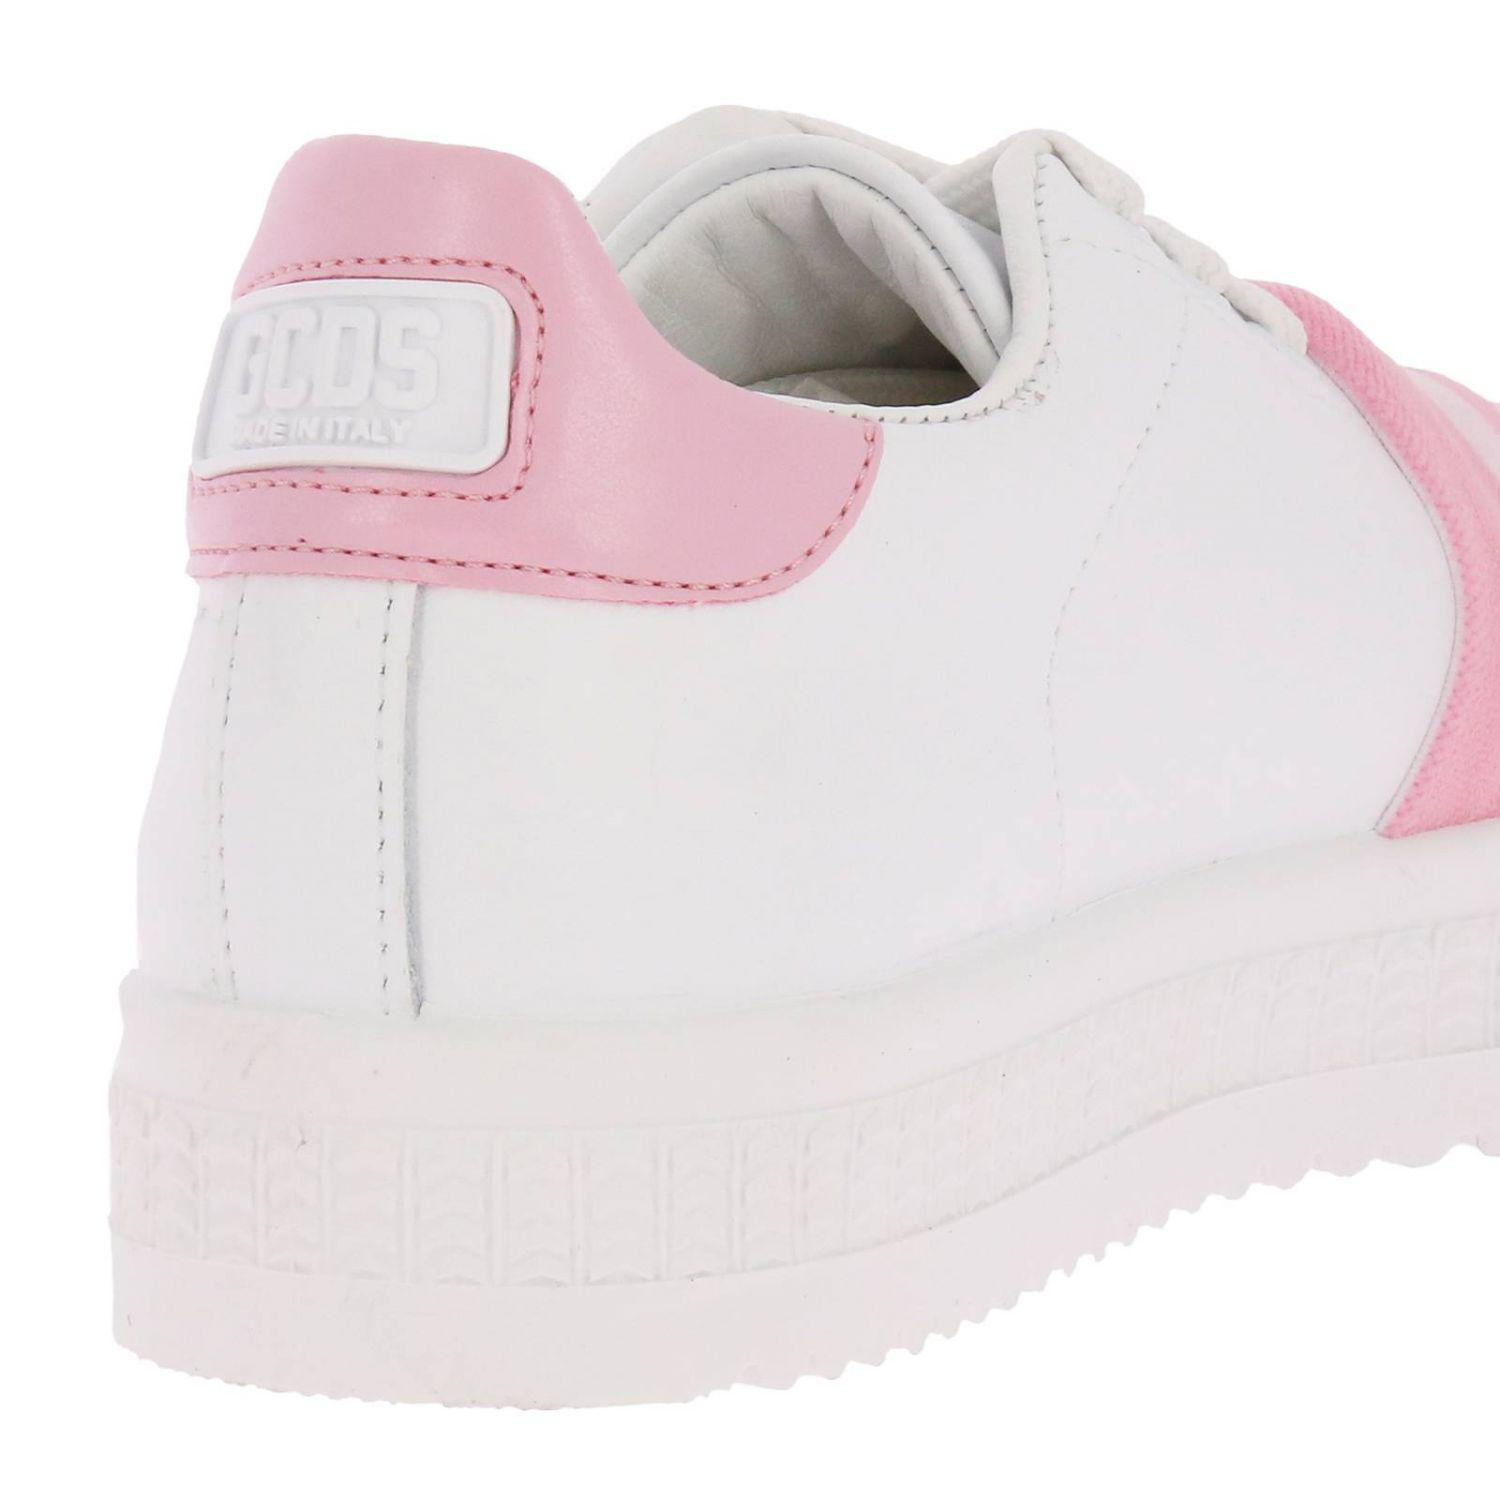 Gcds Leather Sneaker Bianca E Rosa in White/Pink (Pink)